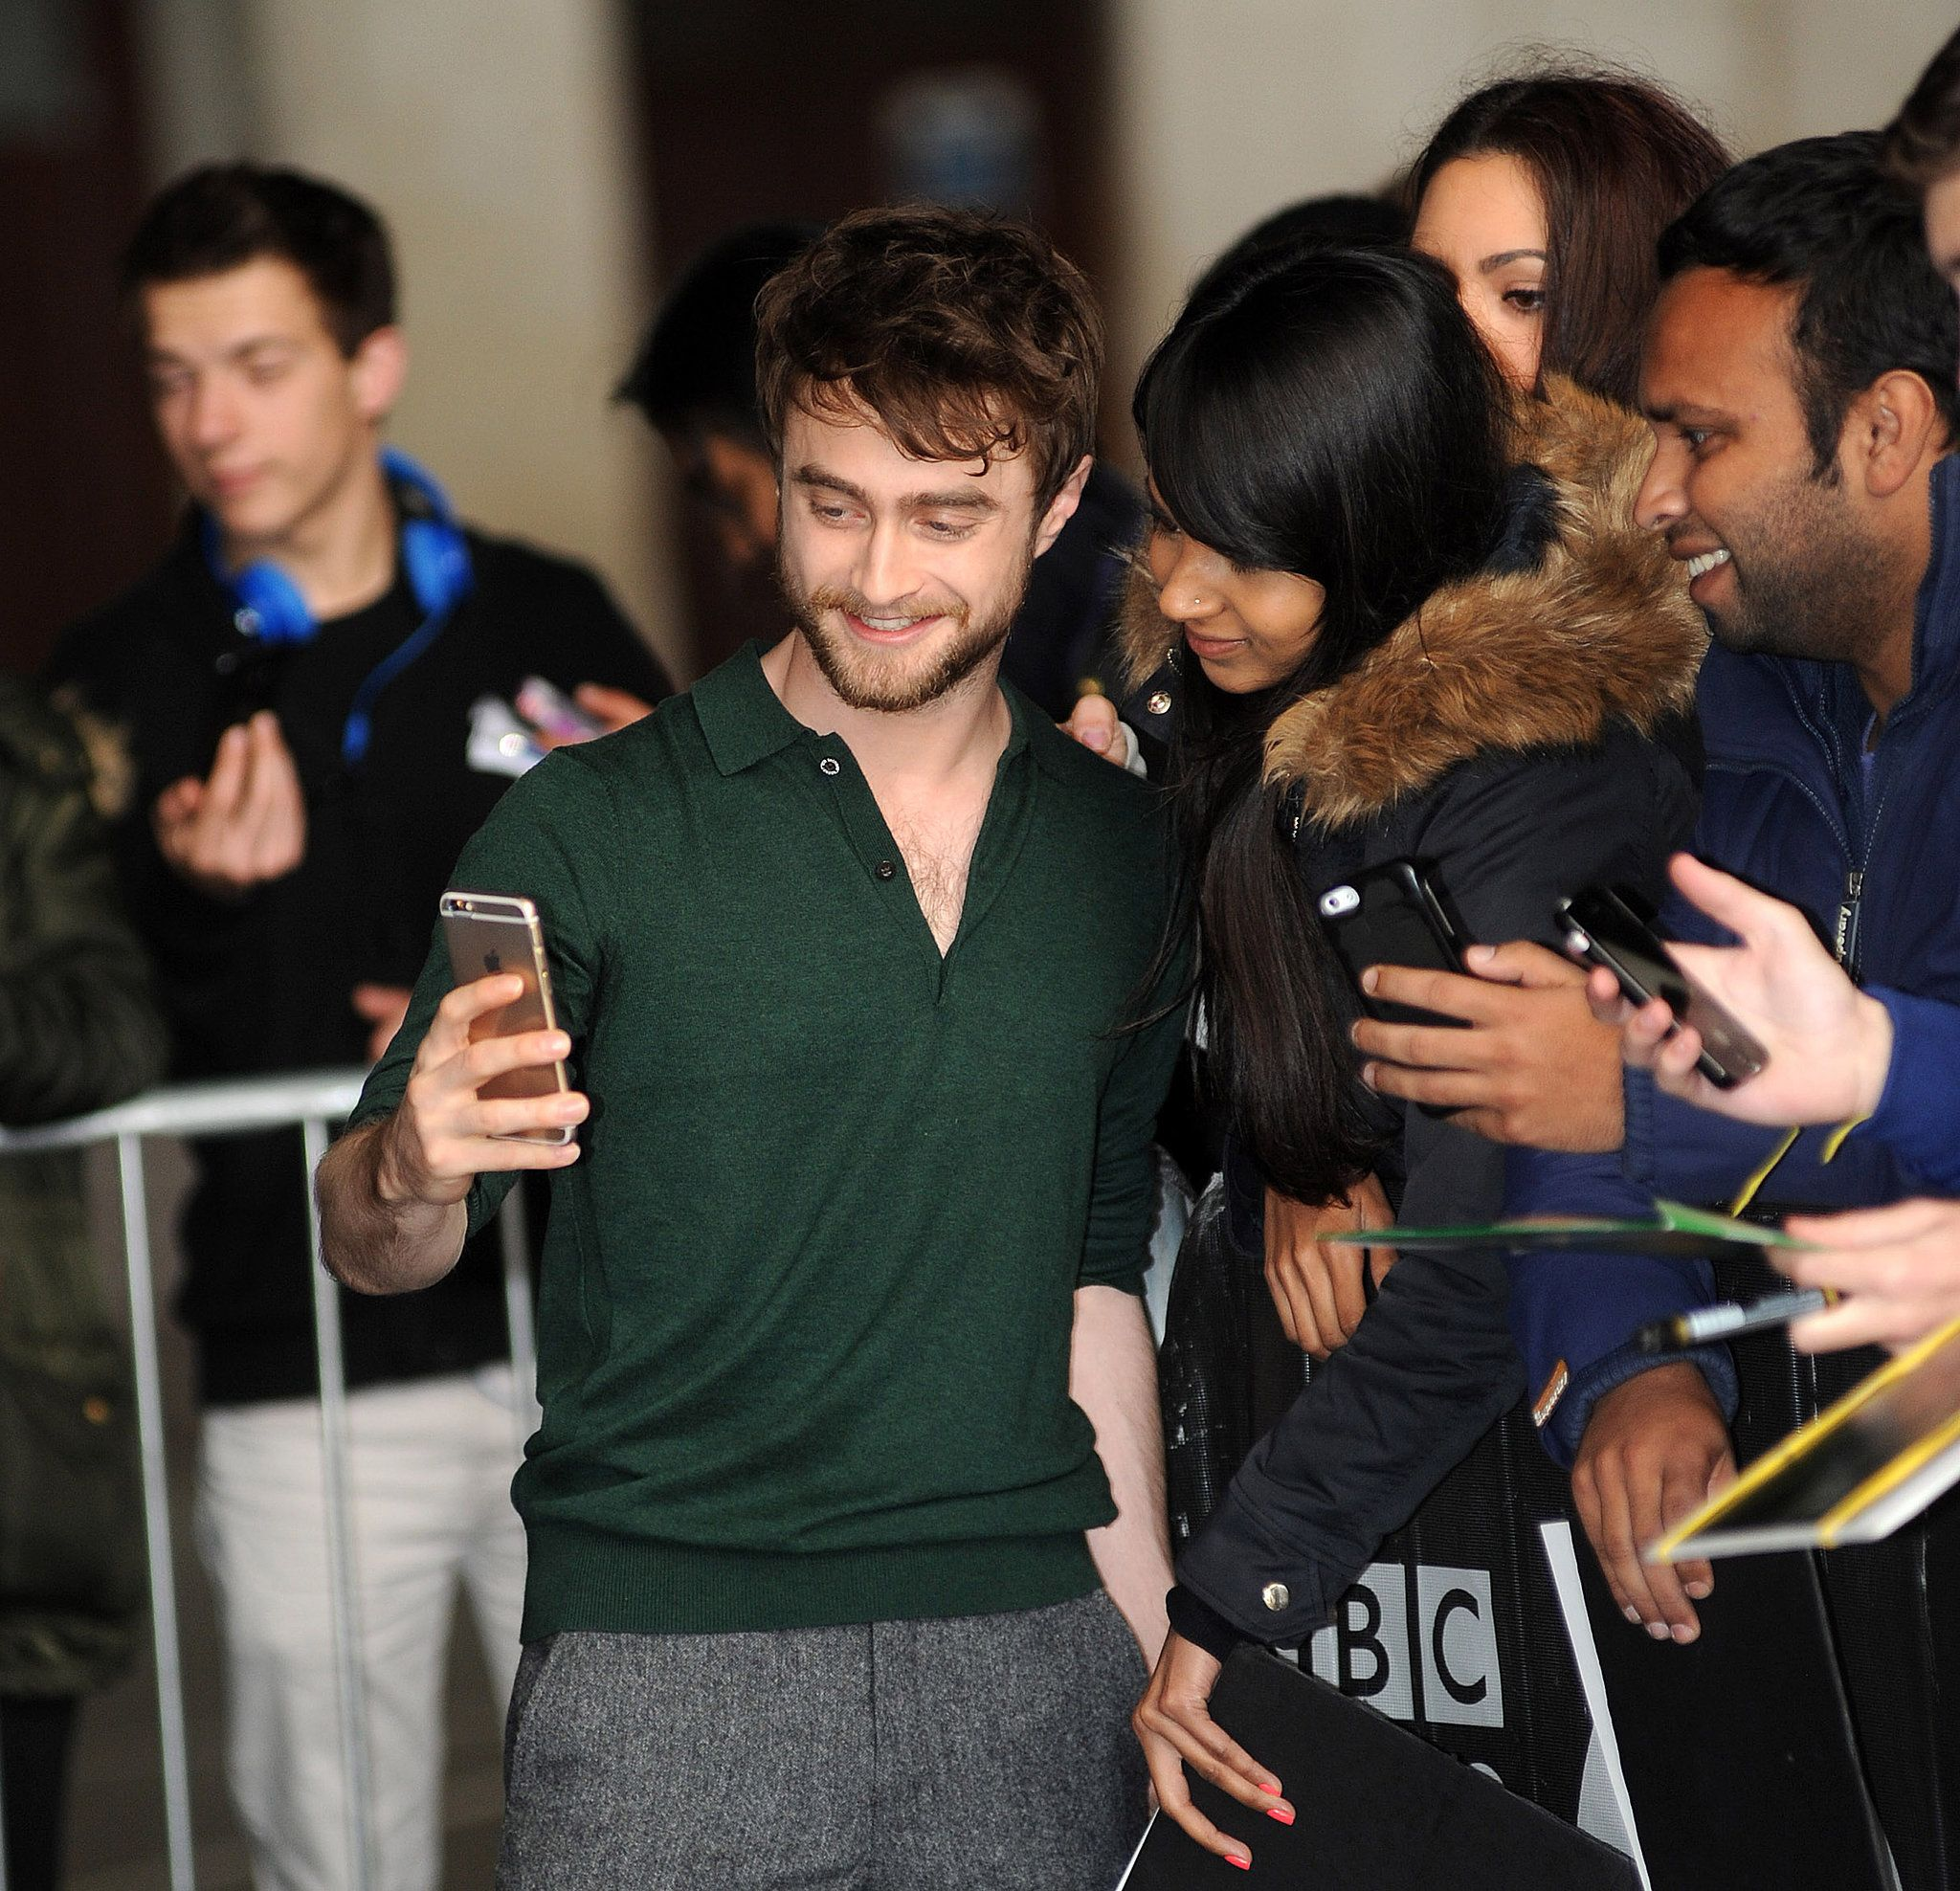 Daniel Radcliffe was out and about in London to promote his movie Horns.